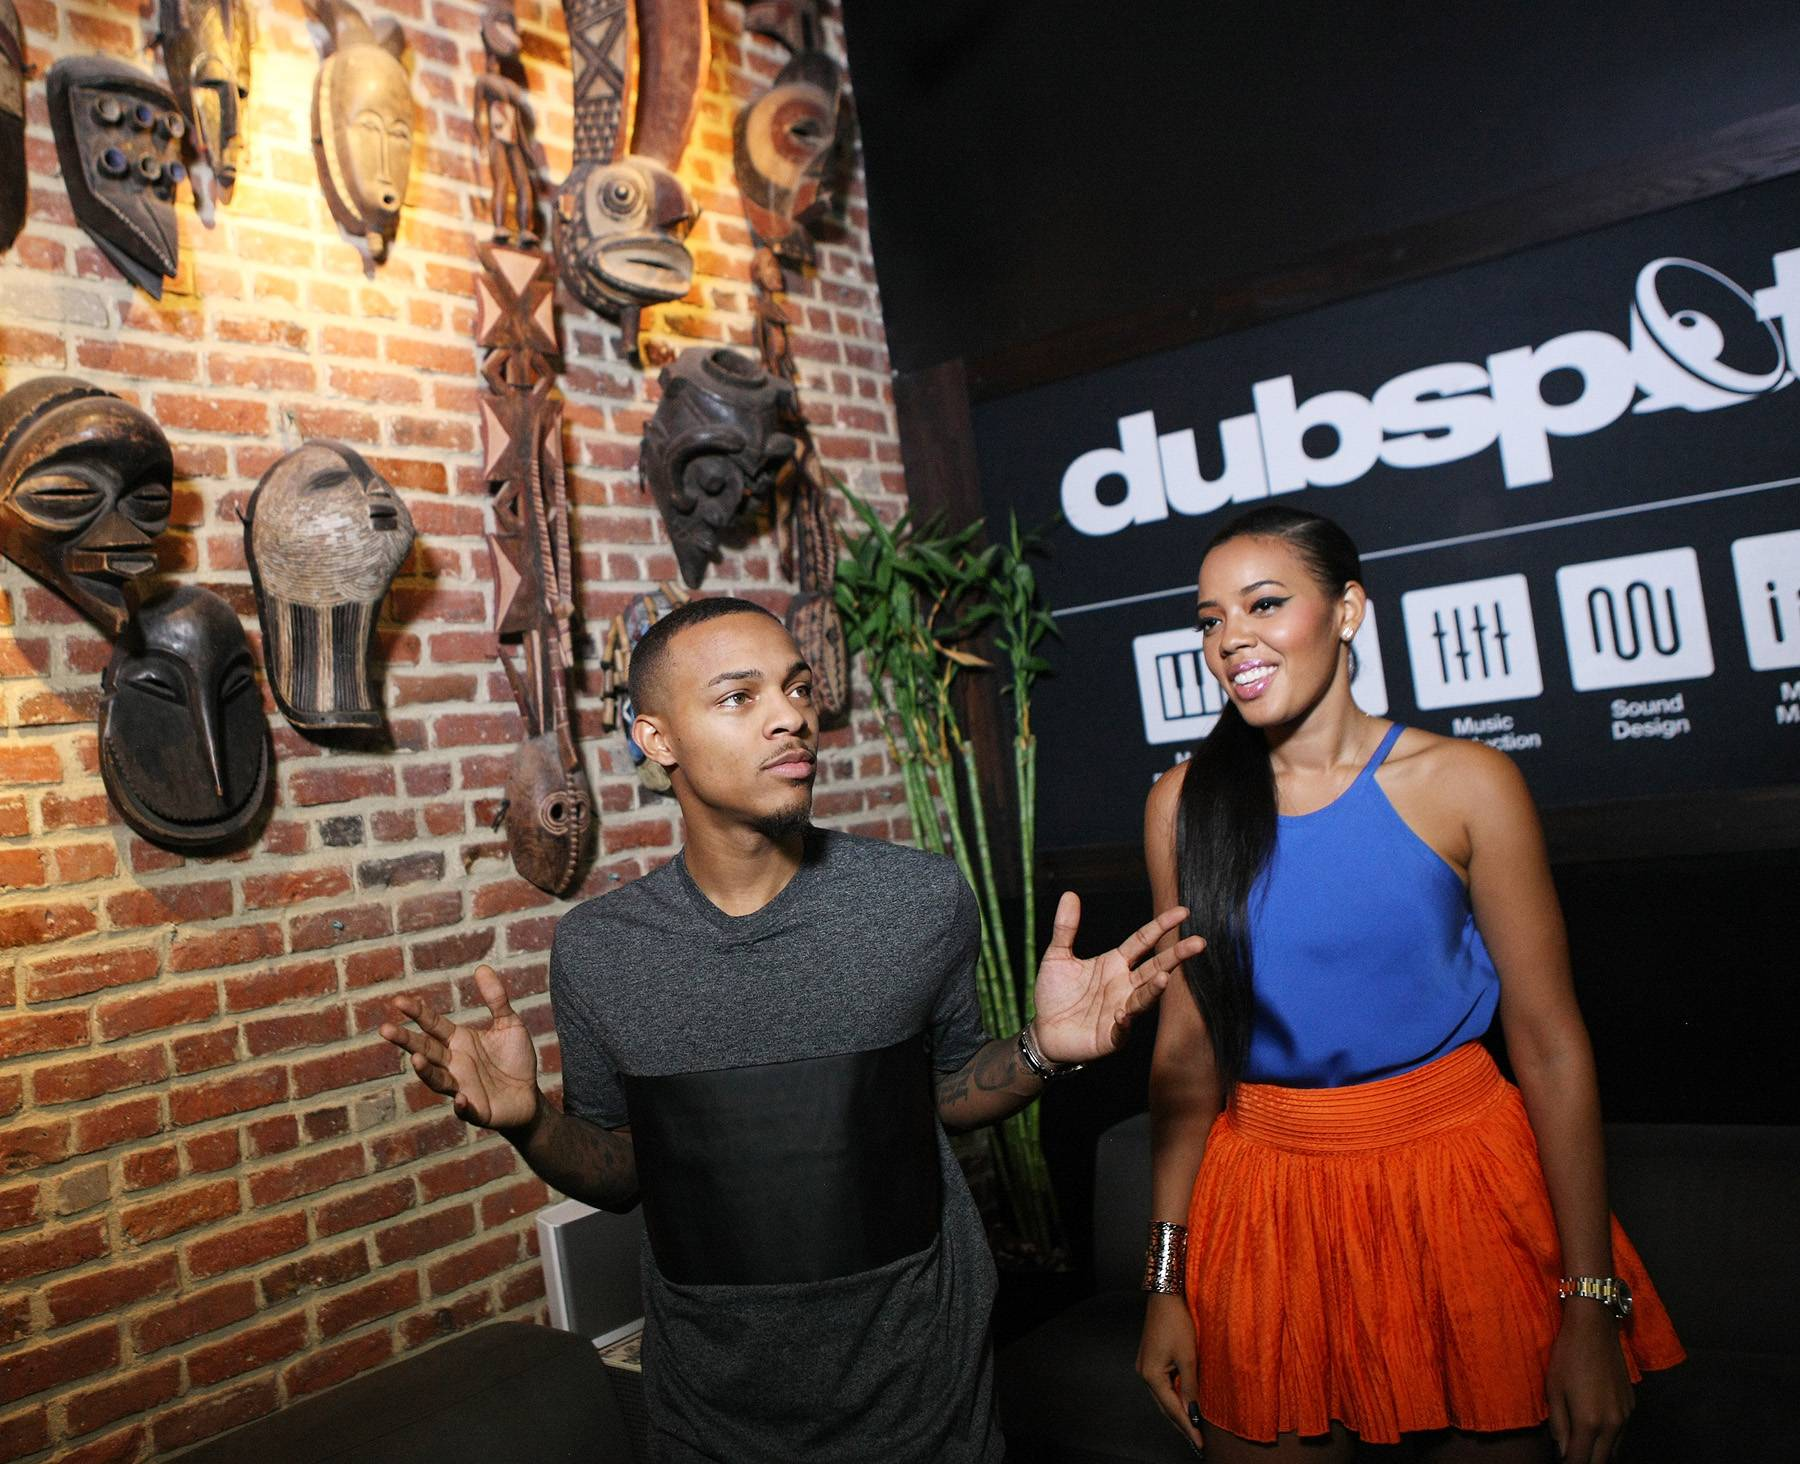 Ready Those Beats - Hosts Bow Wow and Angela Simmons enter Dubspot for their lesson on how to make beats. (Photo: Bennett Raglin/BET/Getty Images for BET)